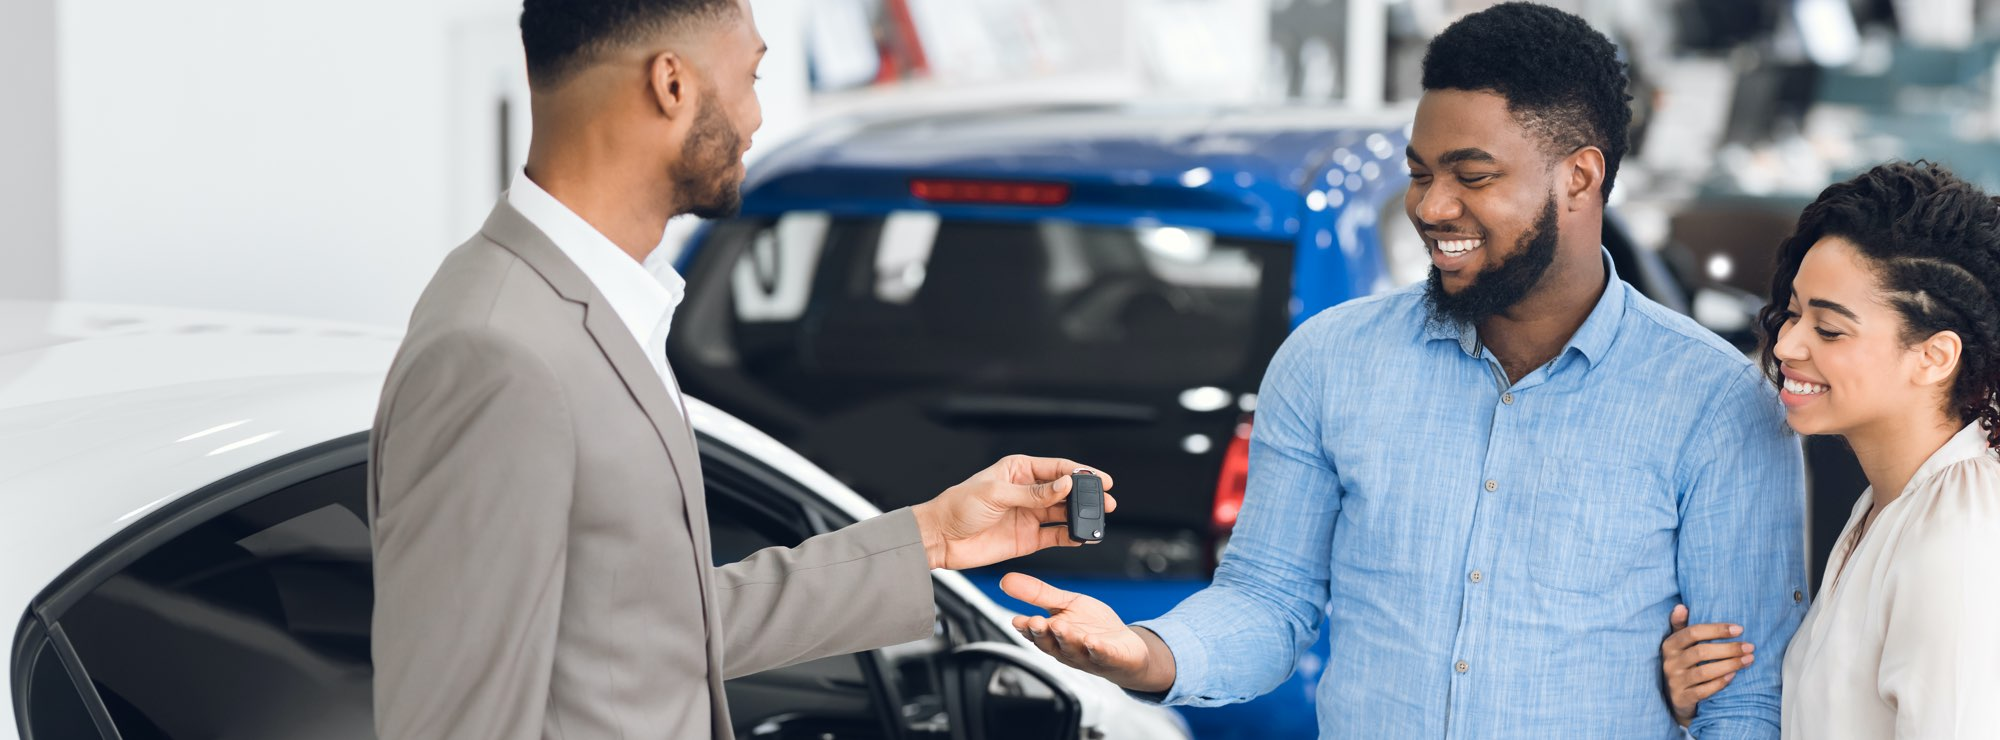 man and woman buying new car